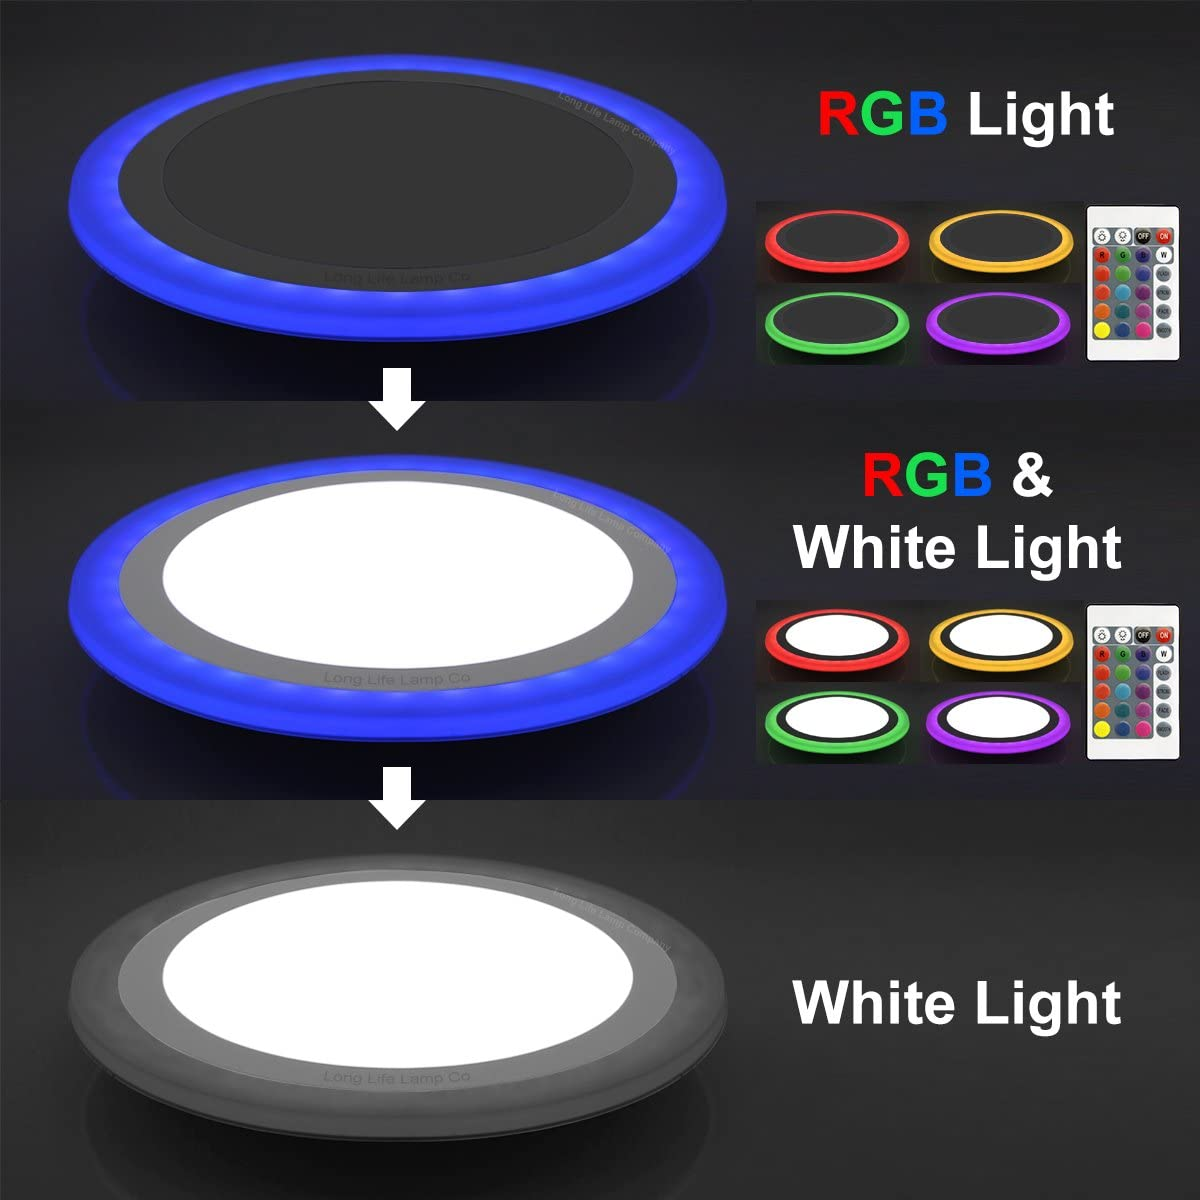 18w Round Led Ceiling Mood Light Panel Cool White With 6w Rgb Colour Changing Ambient Ring Remote Controlled Amazon Co Uk Lighting